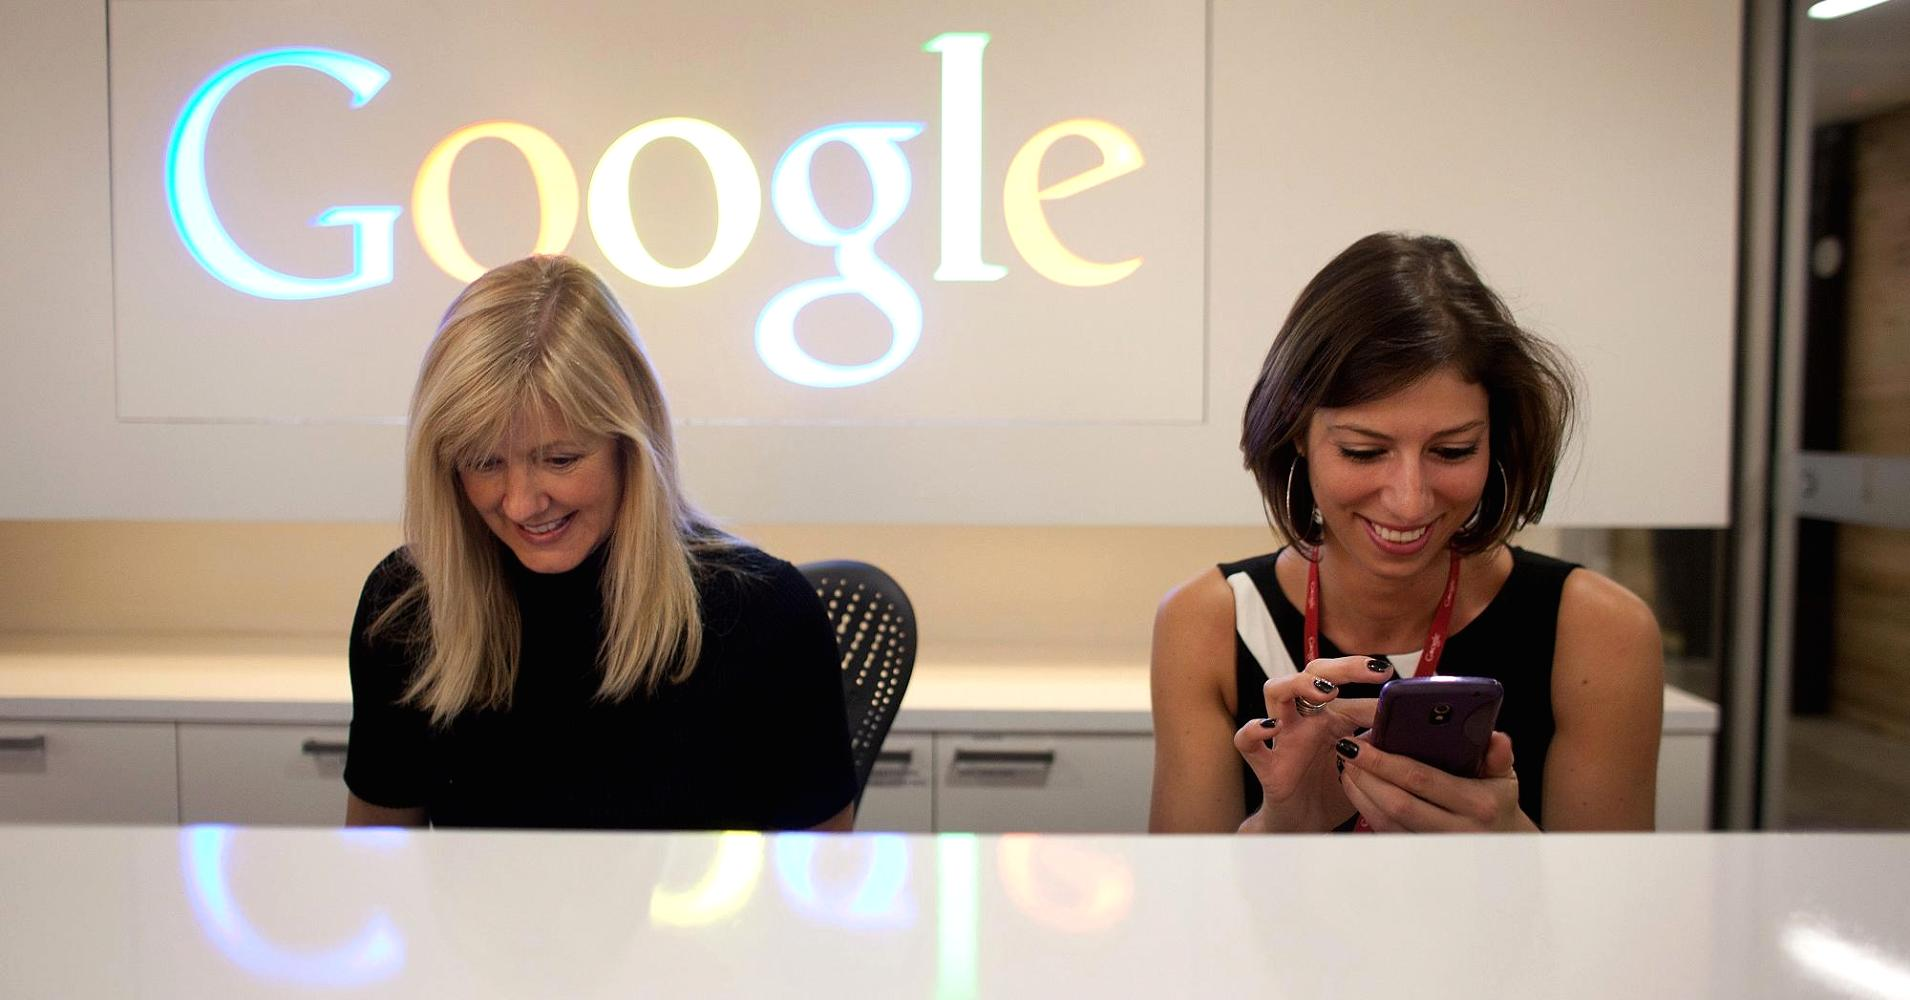 Google leadership coach: The best way to attract high-performing employees doesn't cost a dime